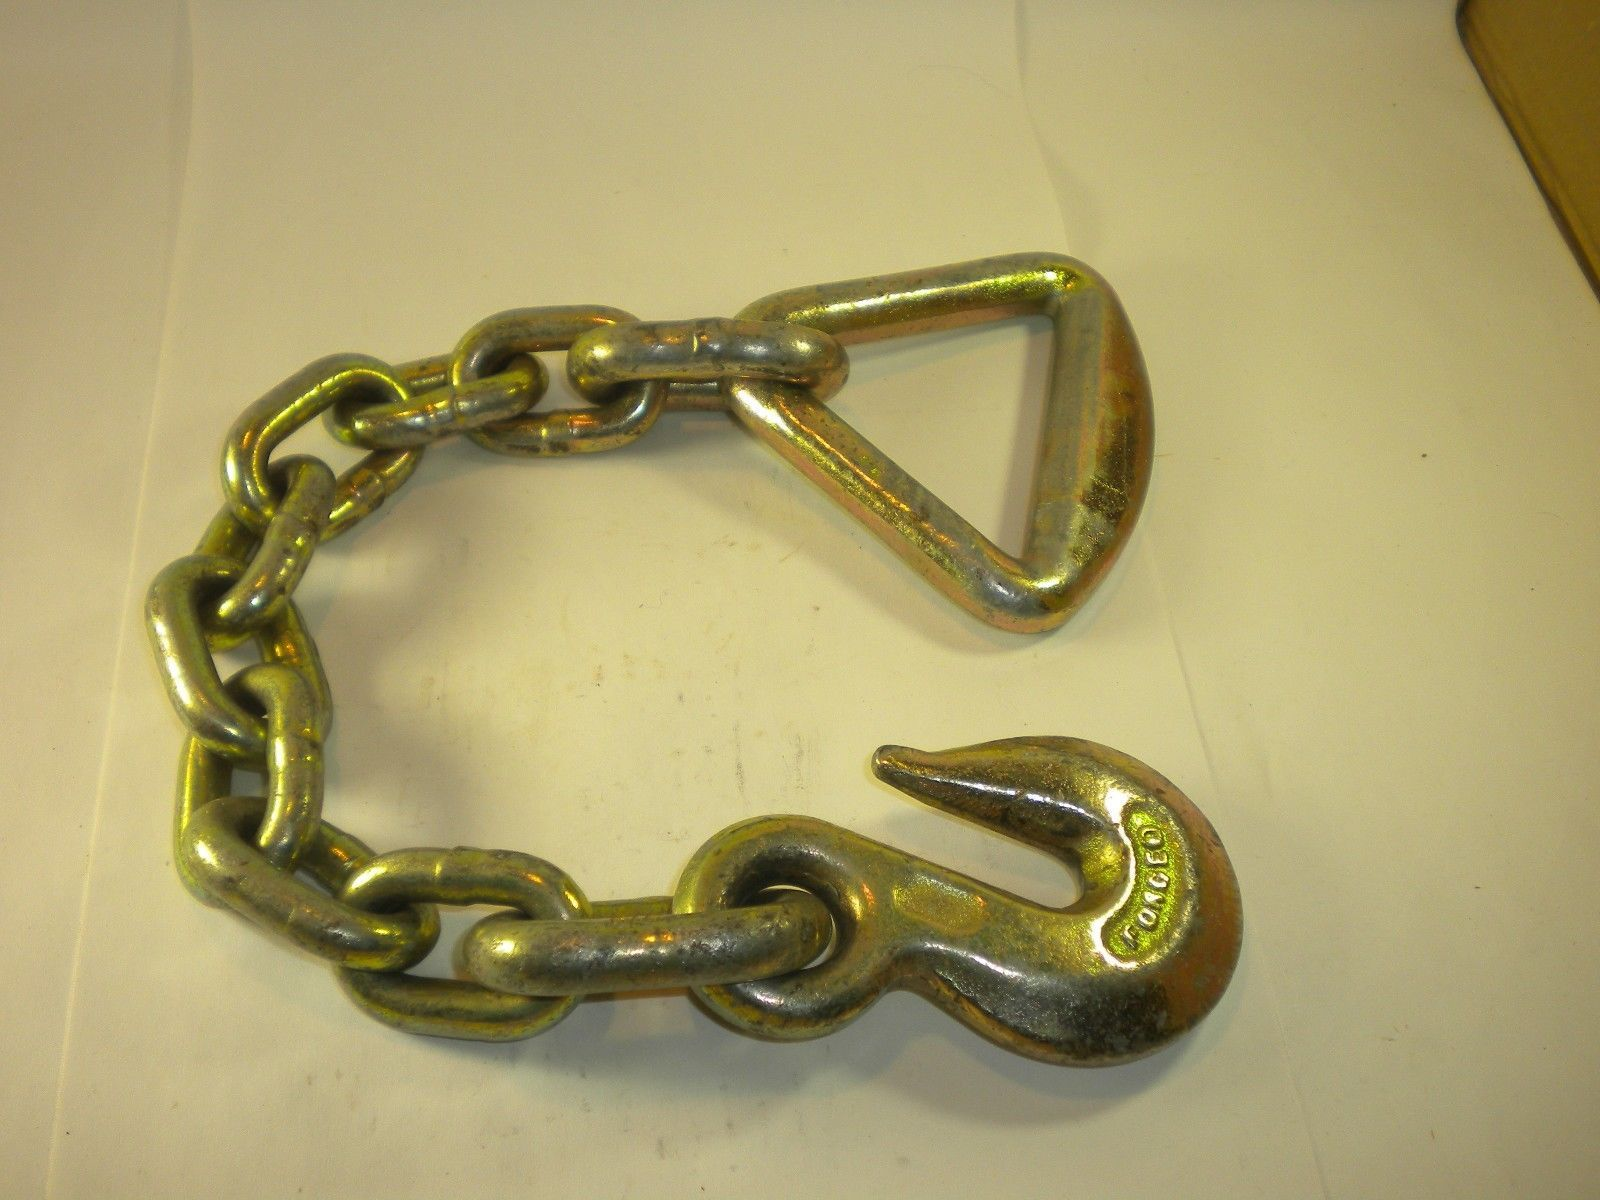 Primary image for 3/8 x 19 Chain anchor with Delta ring hold down